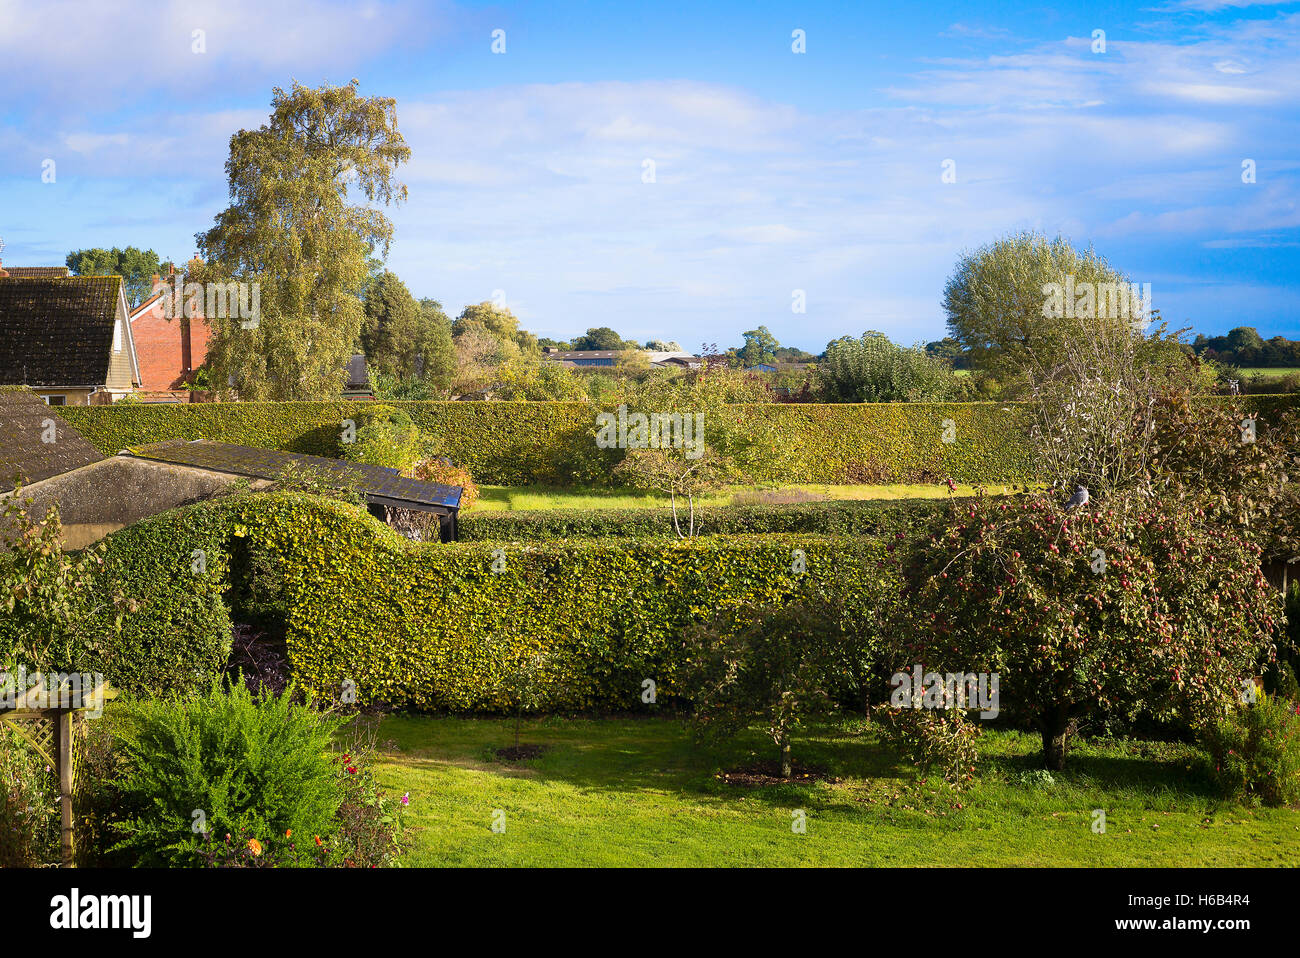 Country garden beech hedges trimmed in Autum ready for winter - Stock Image